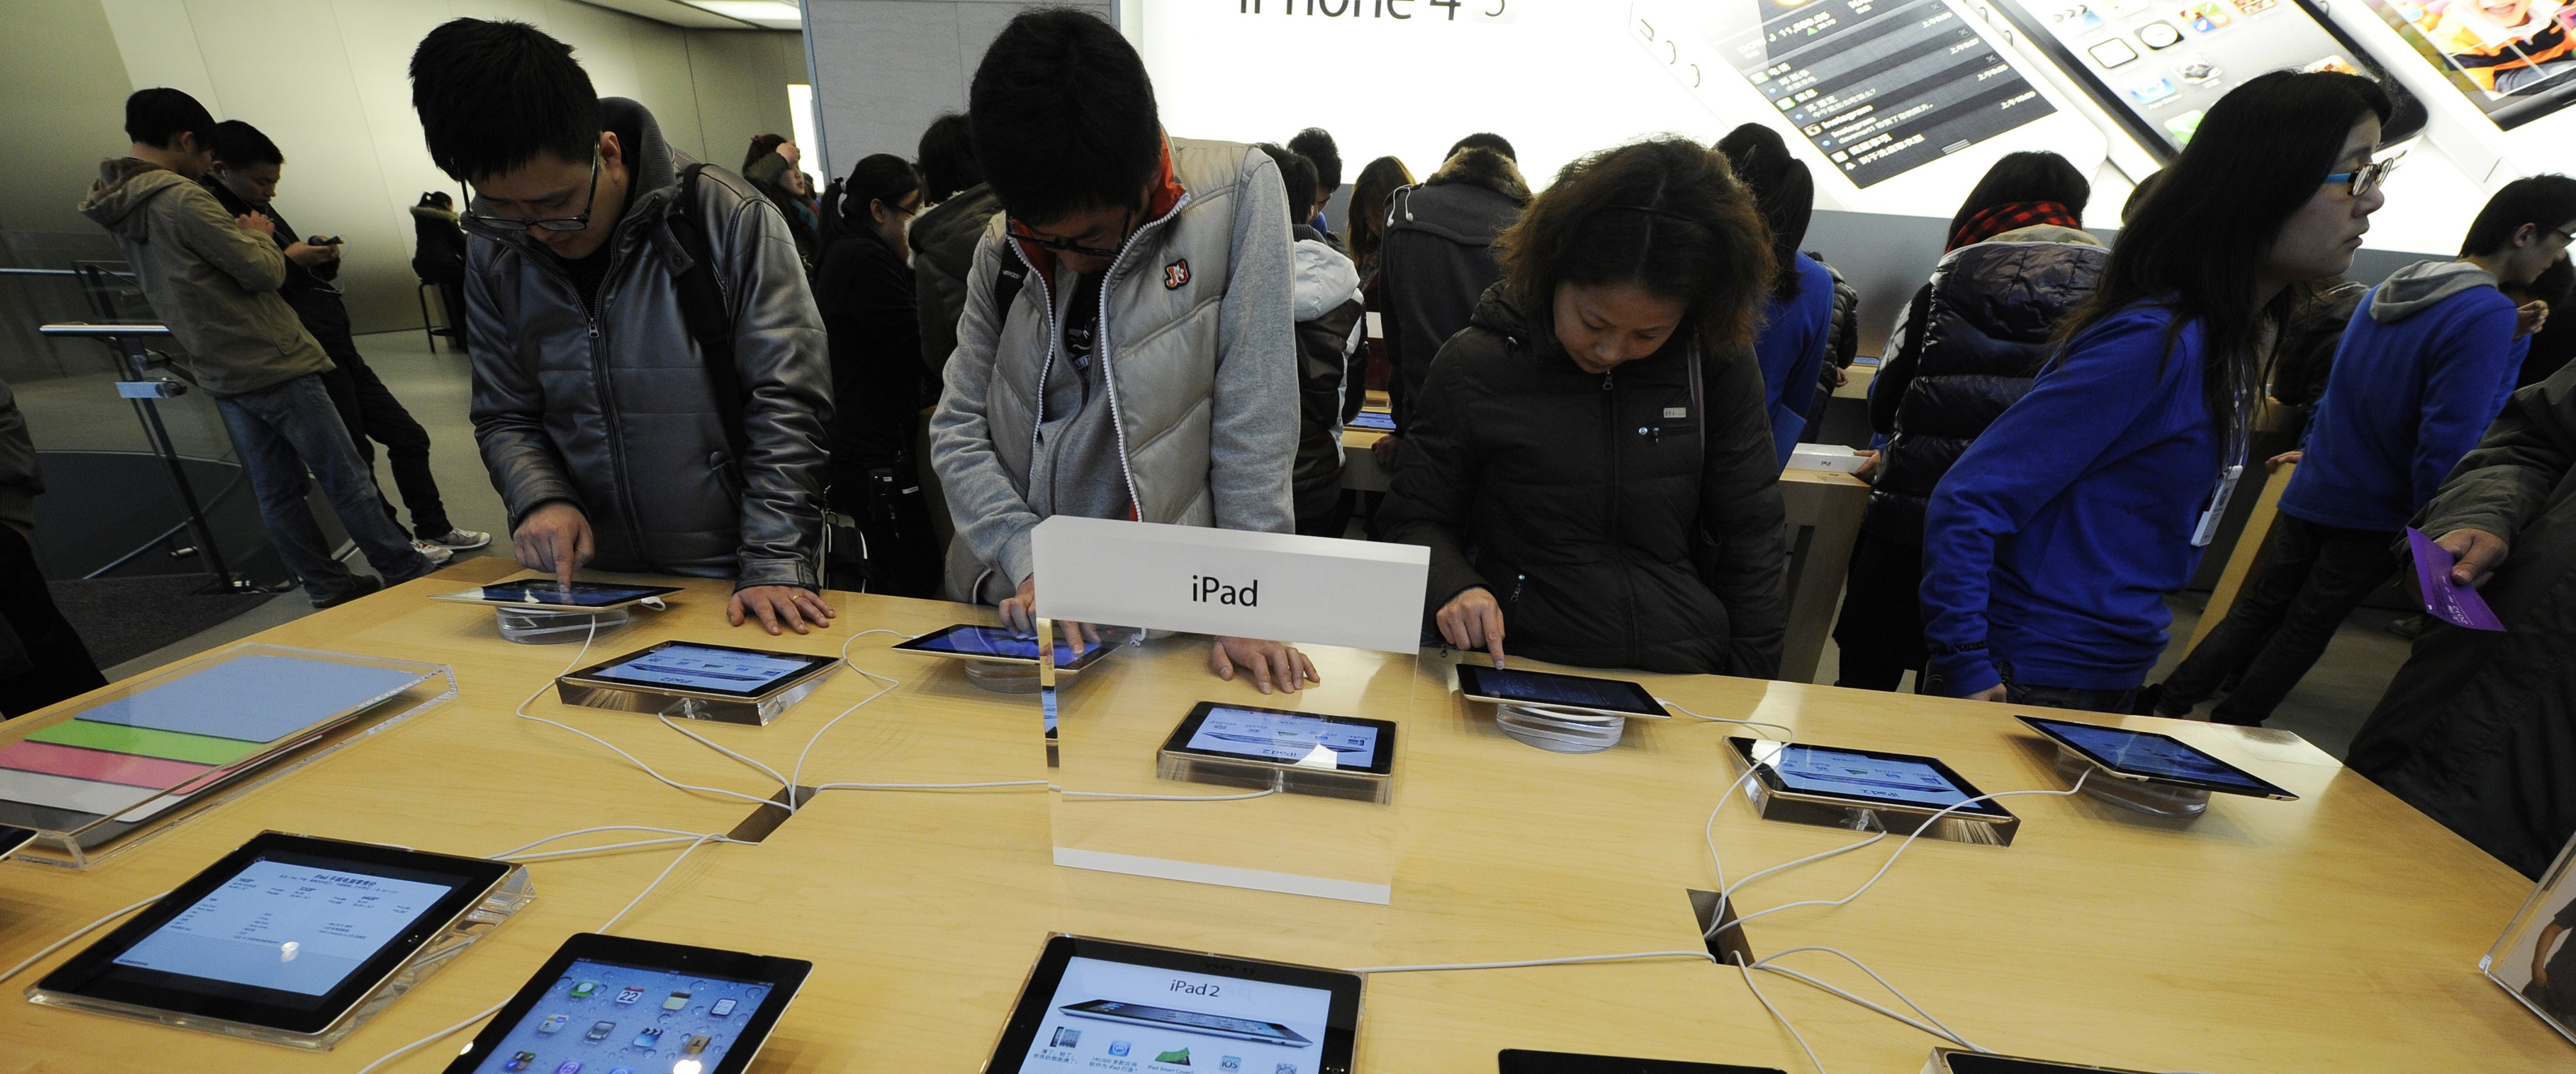 Customers look at Apple iPads at a store